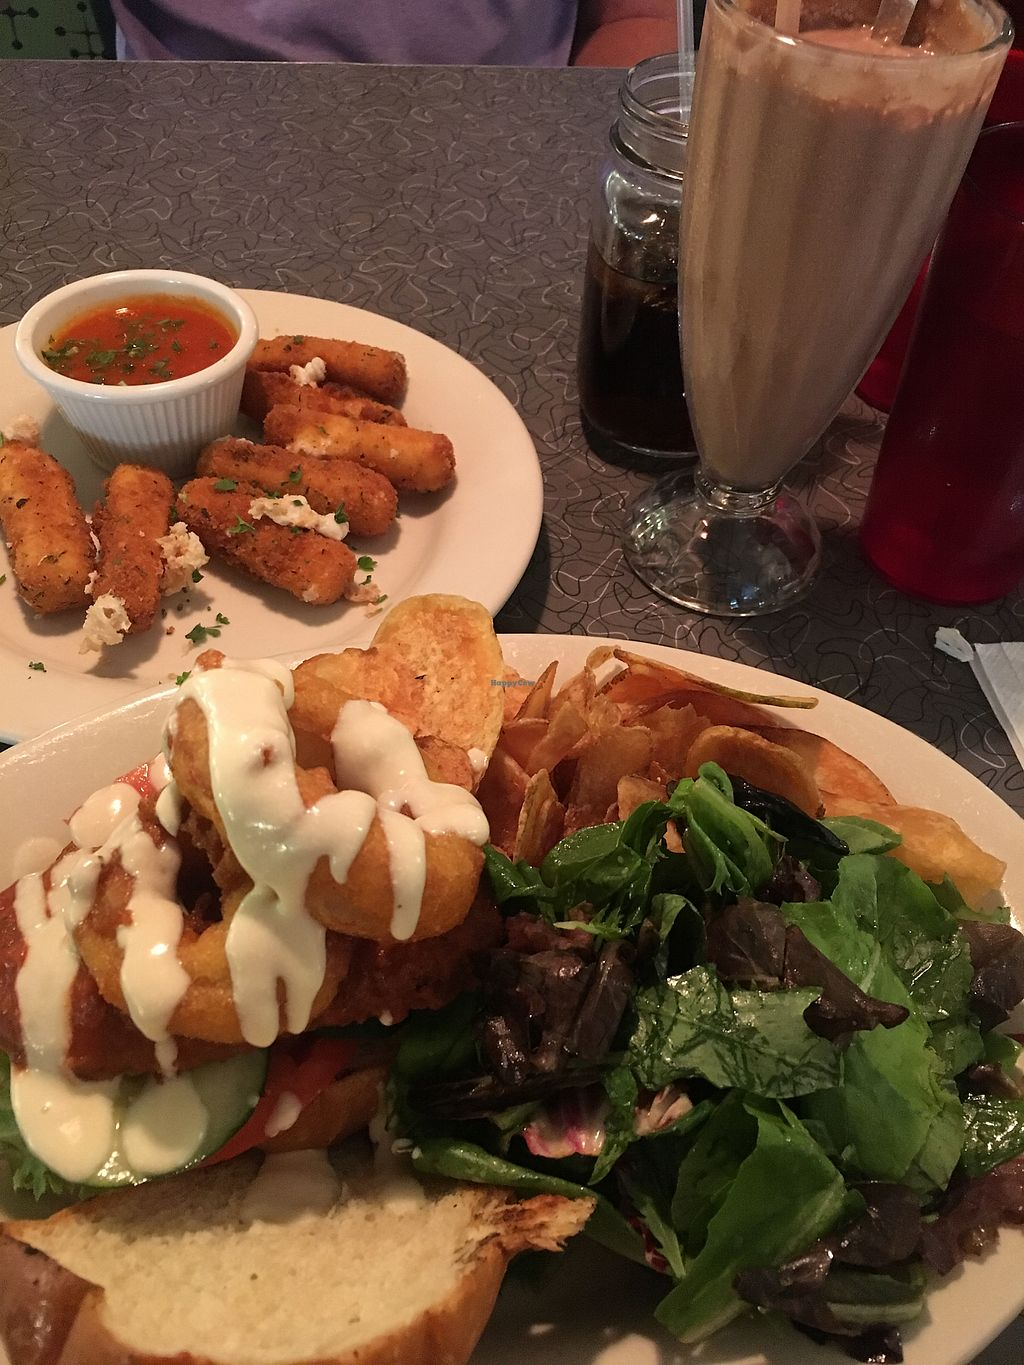 """Photo of Veggie Galaxy  by <a href=""""/members/profile/amamurph"""">amamurph</a> <br/>so yummy! <br/> August 20, 2017  - <a href='/contact/abuse/image/27722/294957'>Report</a>"""